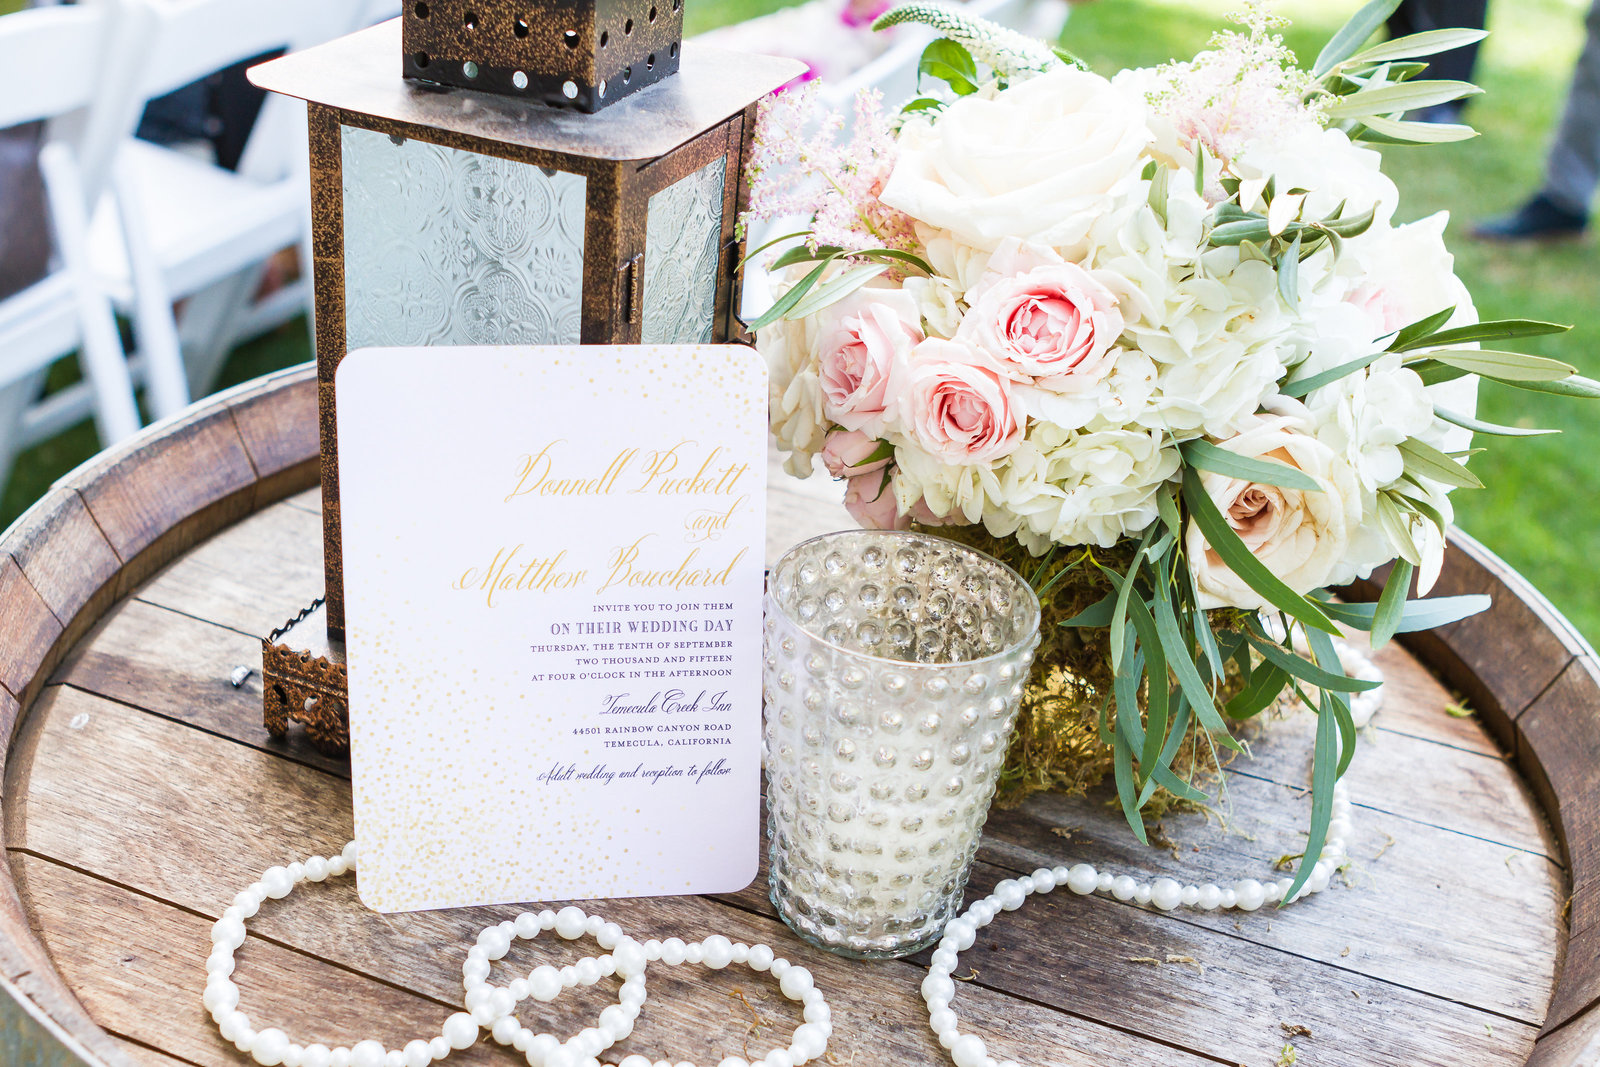 14-Temecula Wedding Pictures-Temecula Creek Inn_